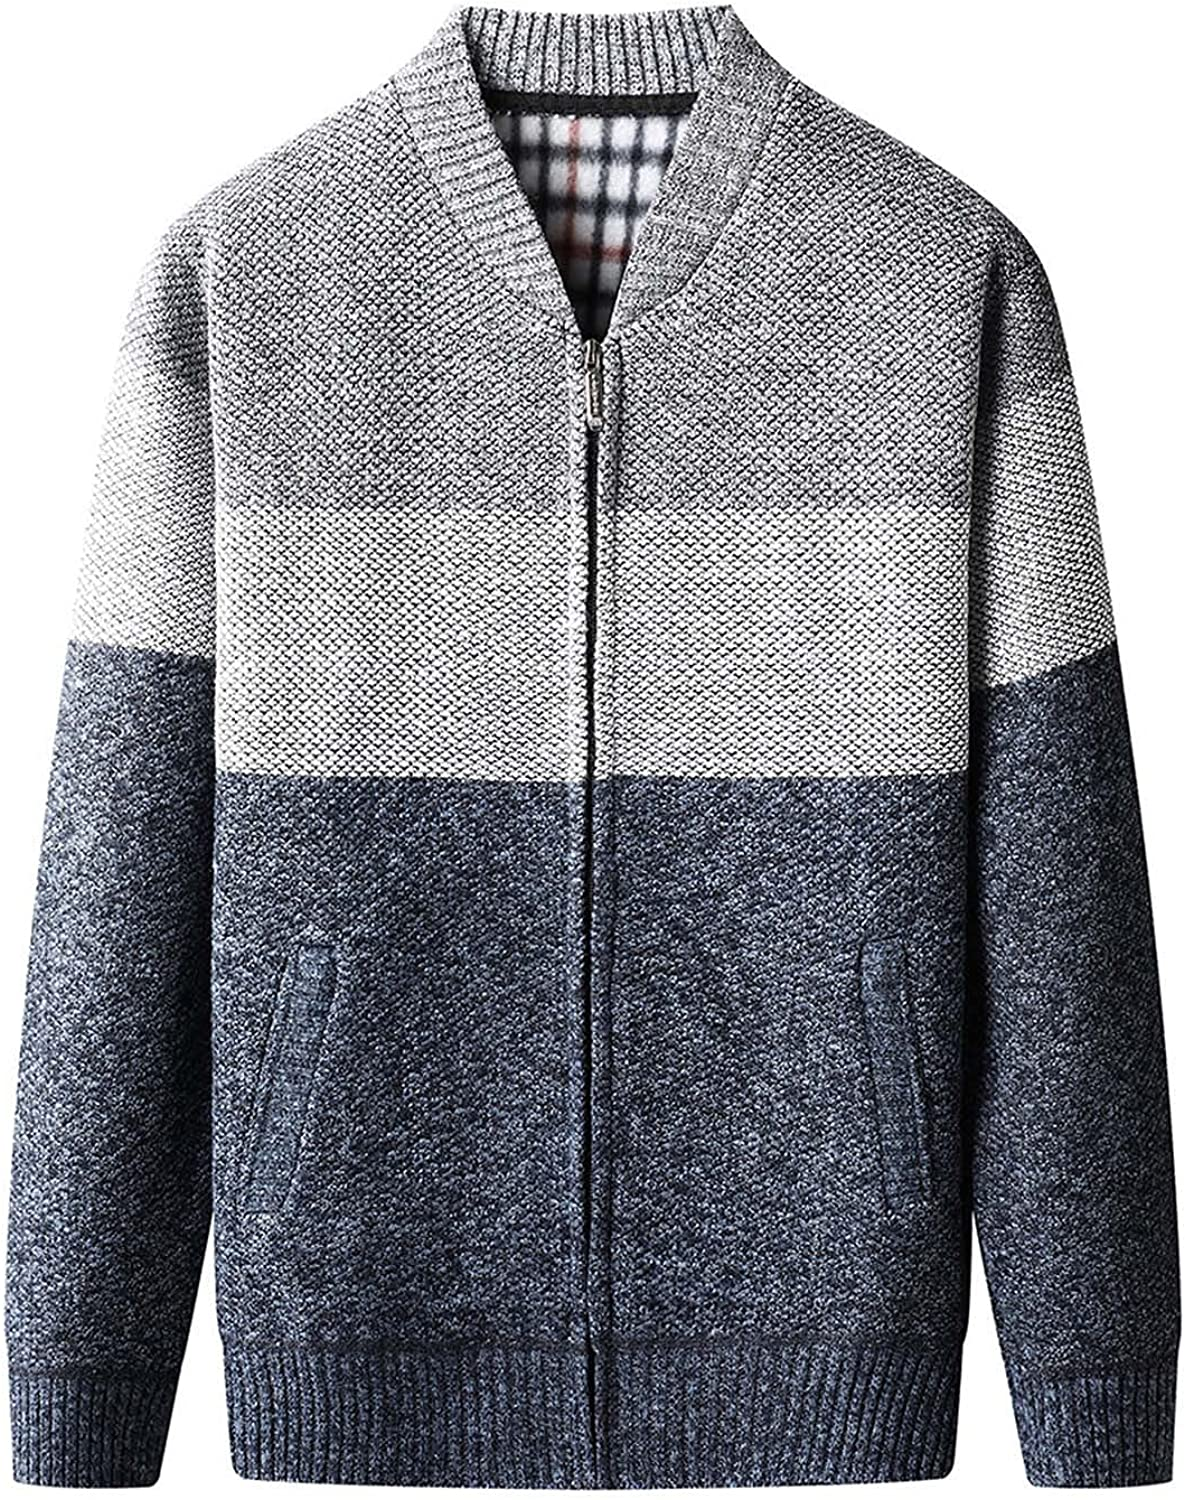 FORUU Men's Sweater Jacket Fall Winter Overcoat Color Matching Stand-up Collar Wool Coat Casual Plus Size Knit Sweater